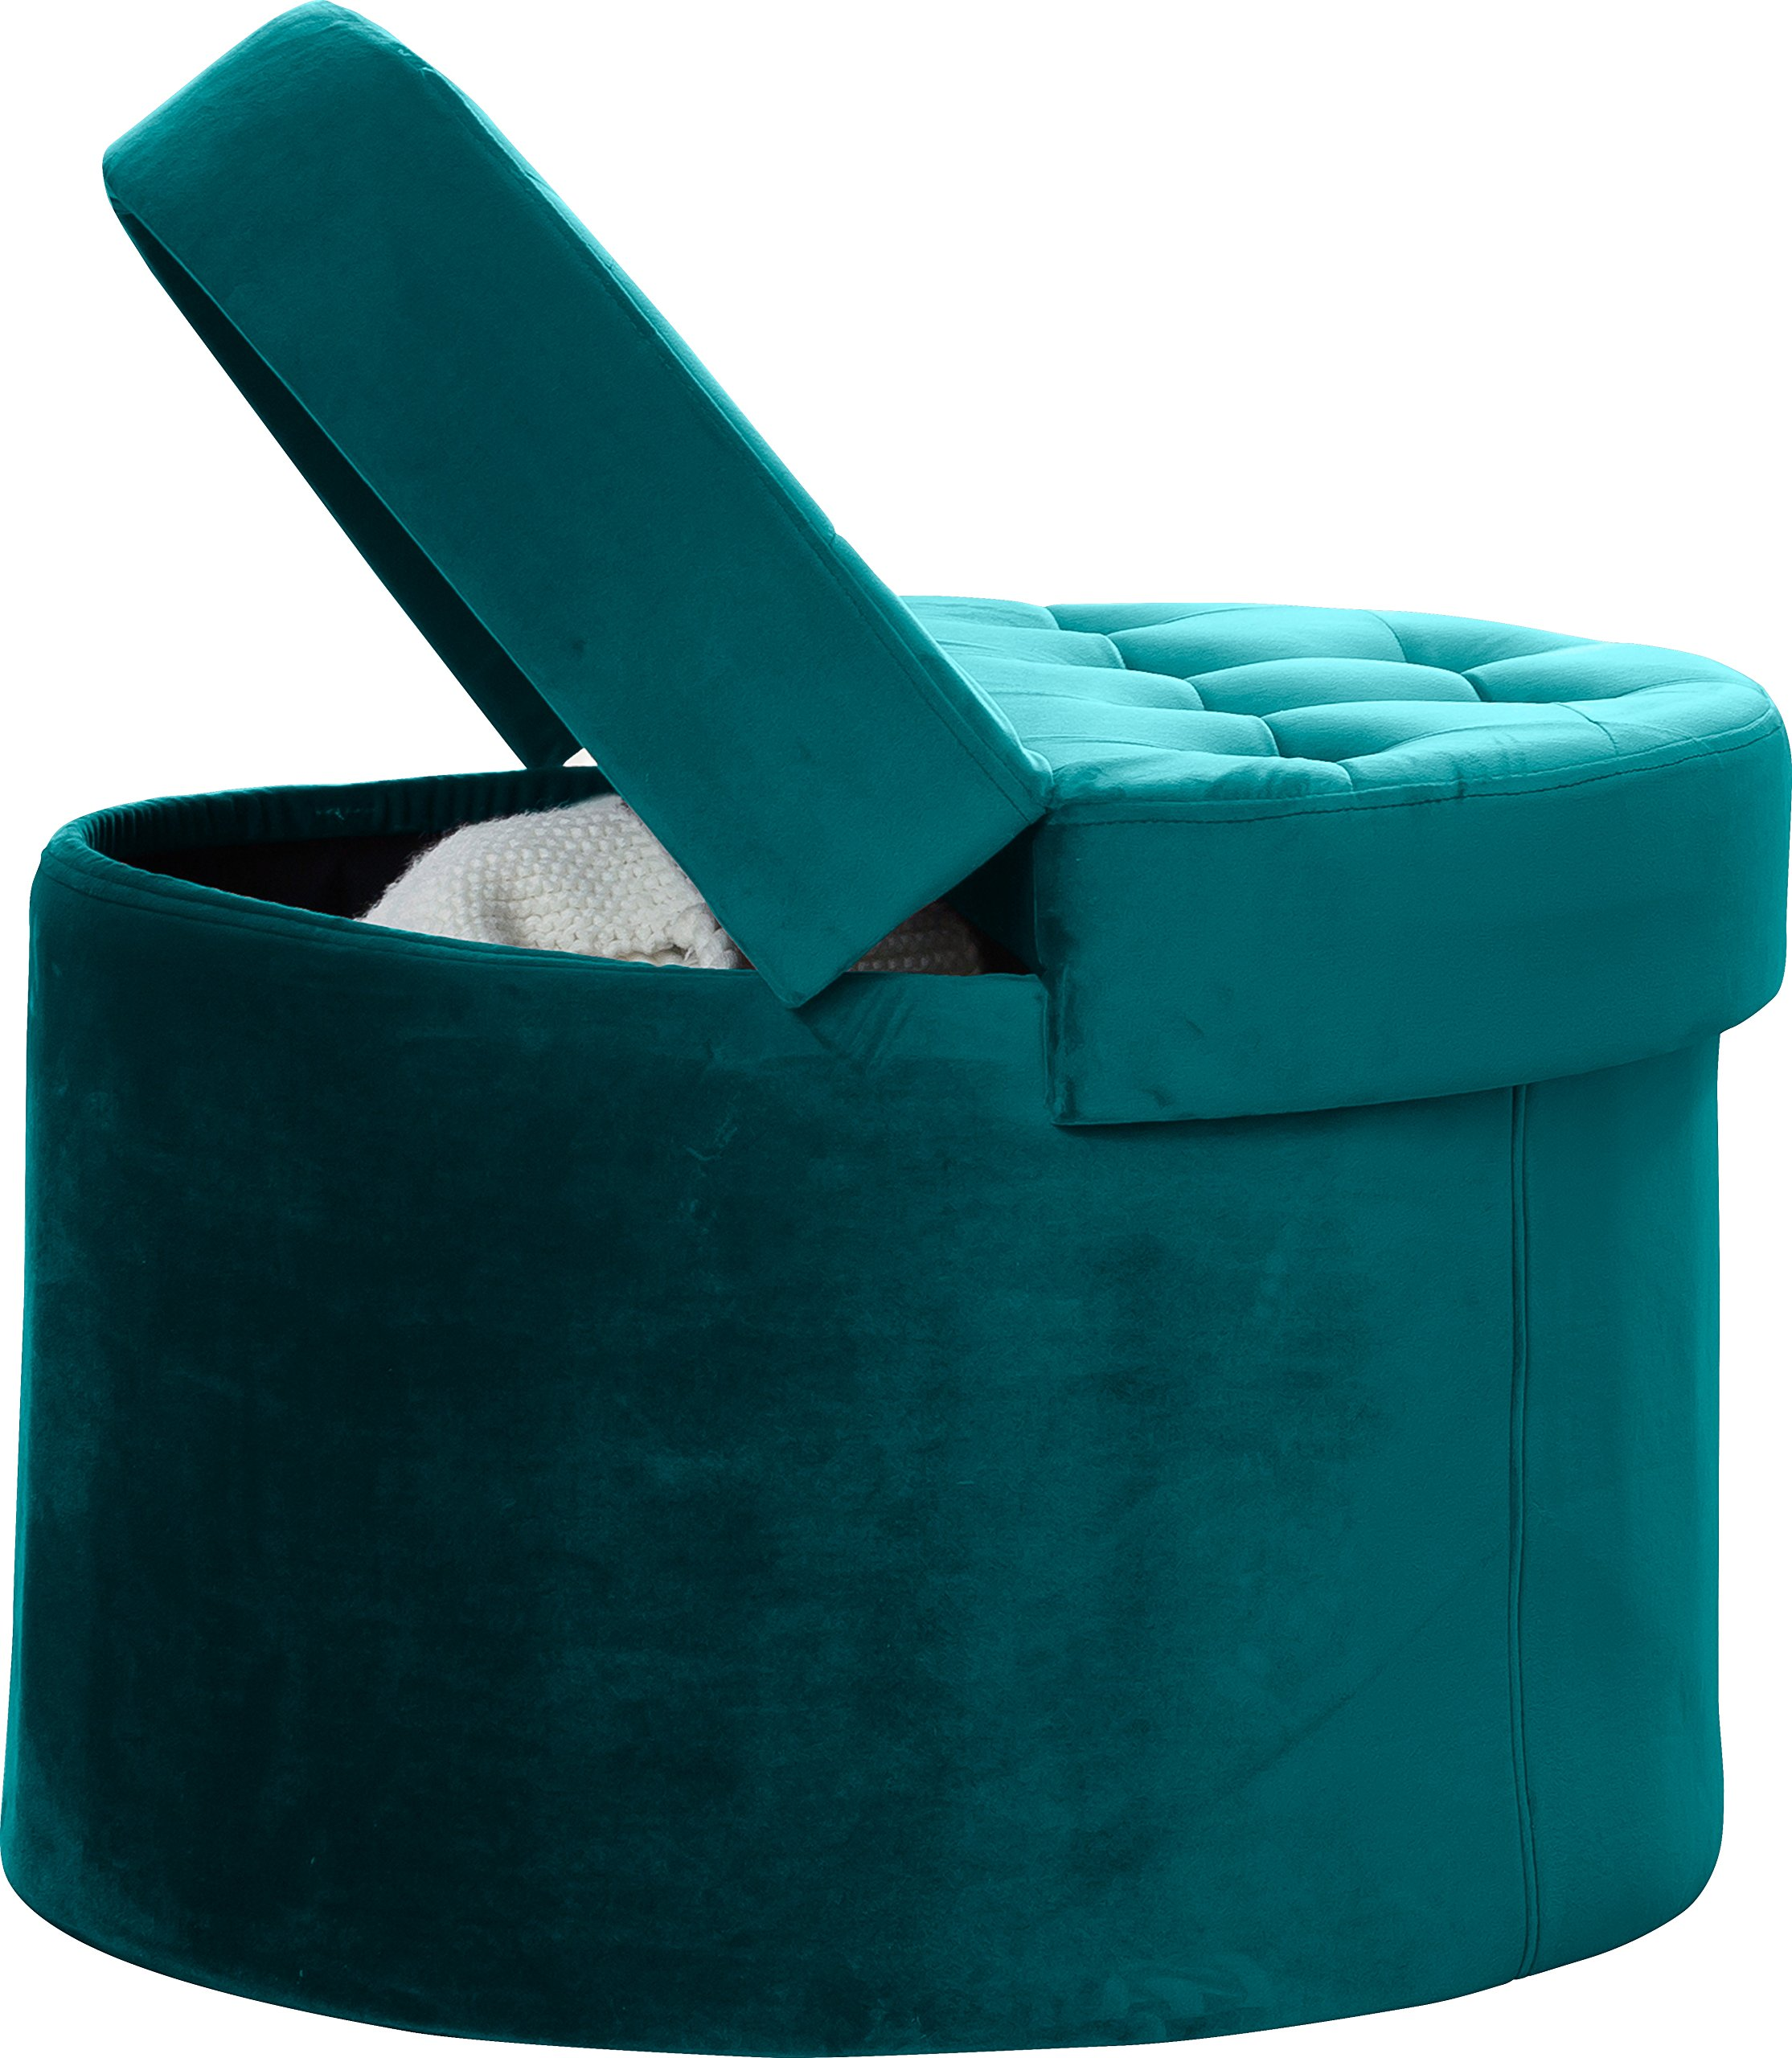 Decor Venue Foldable Velvet Tufted Large Round Storage Ottoman Foot Rest Stool/Seat with Removable Lid - Teal